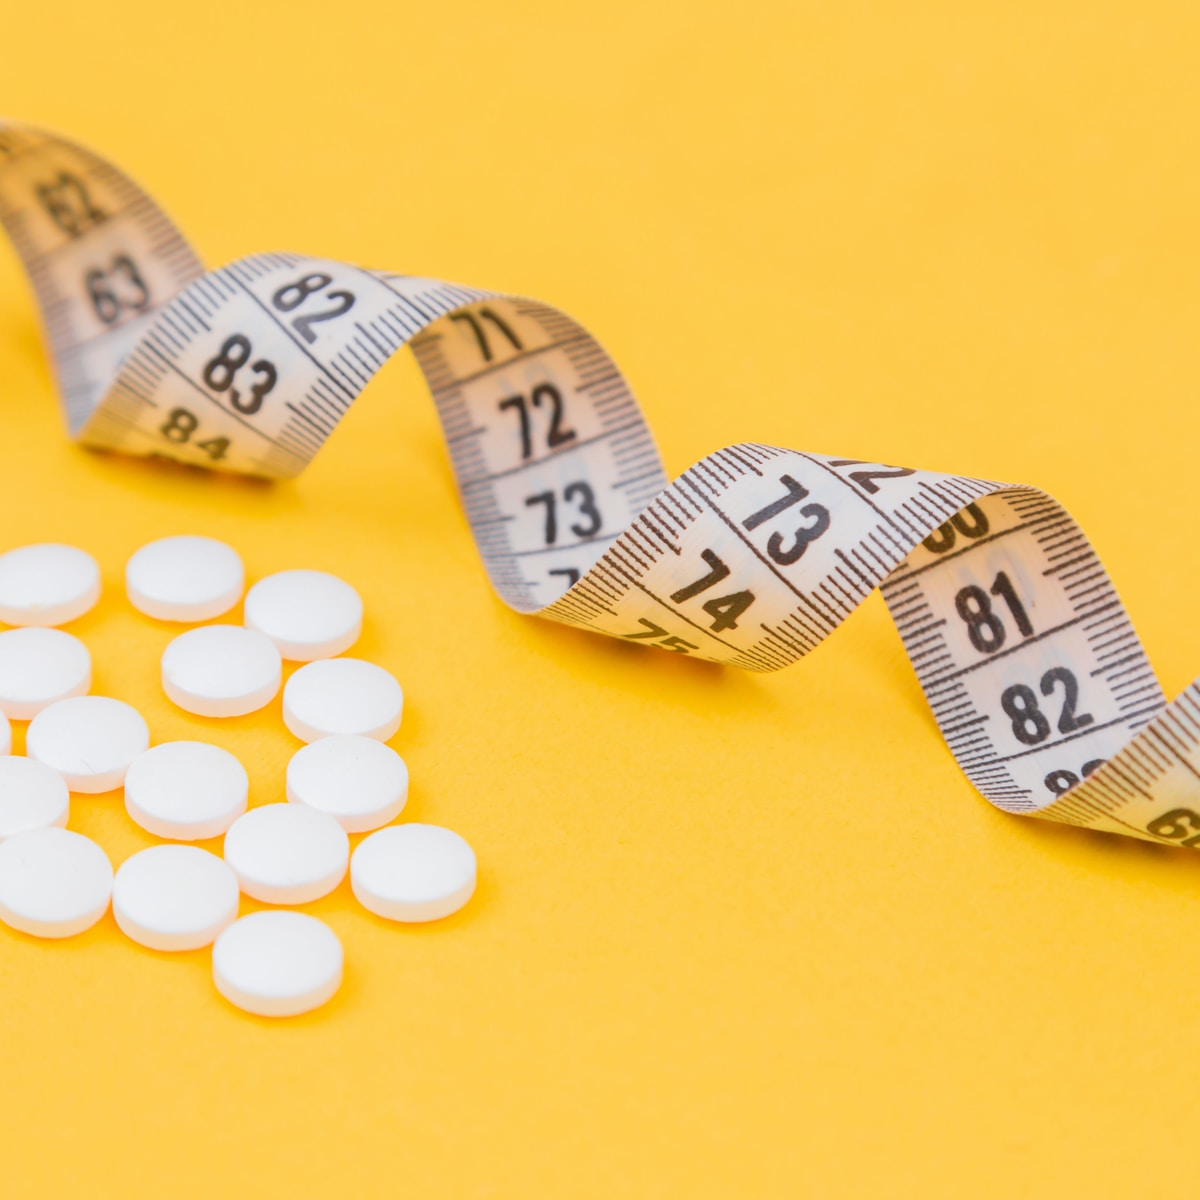 suplementos deportivos, white round medication pill on yellow surface